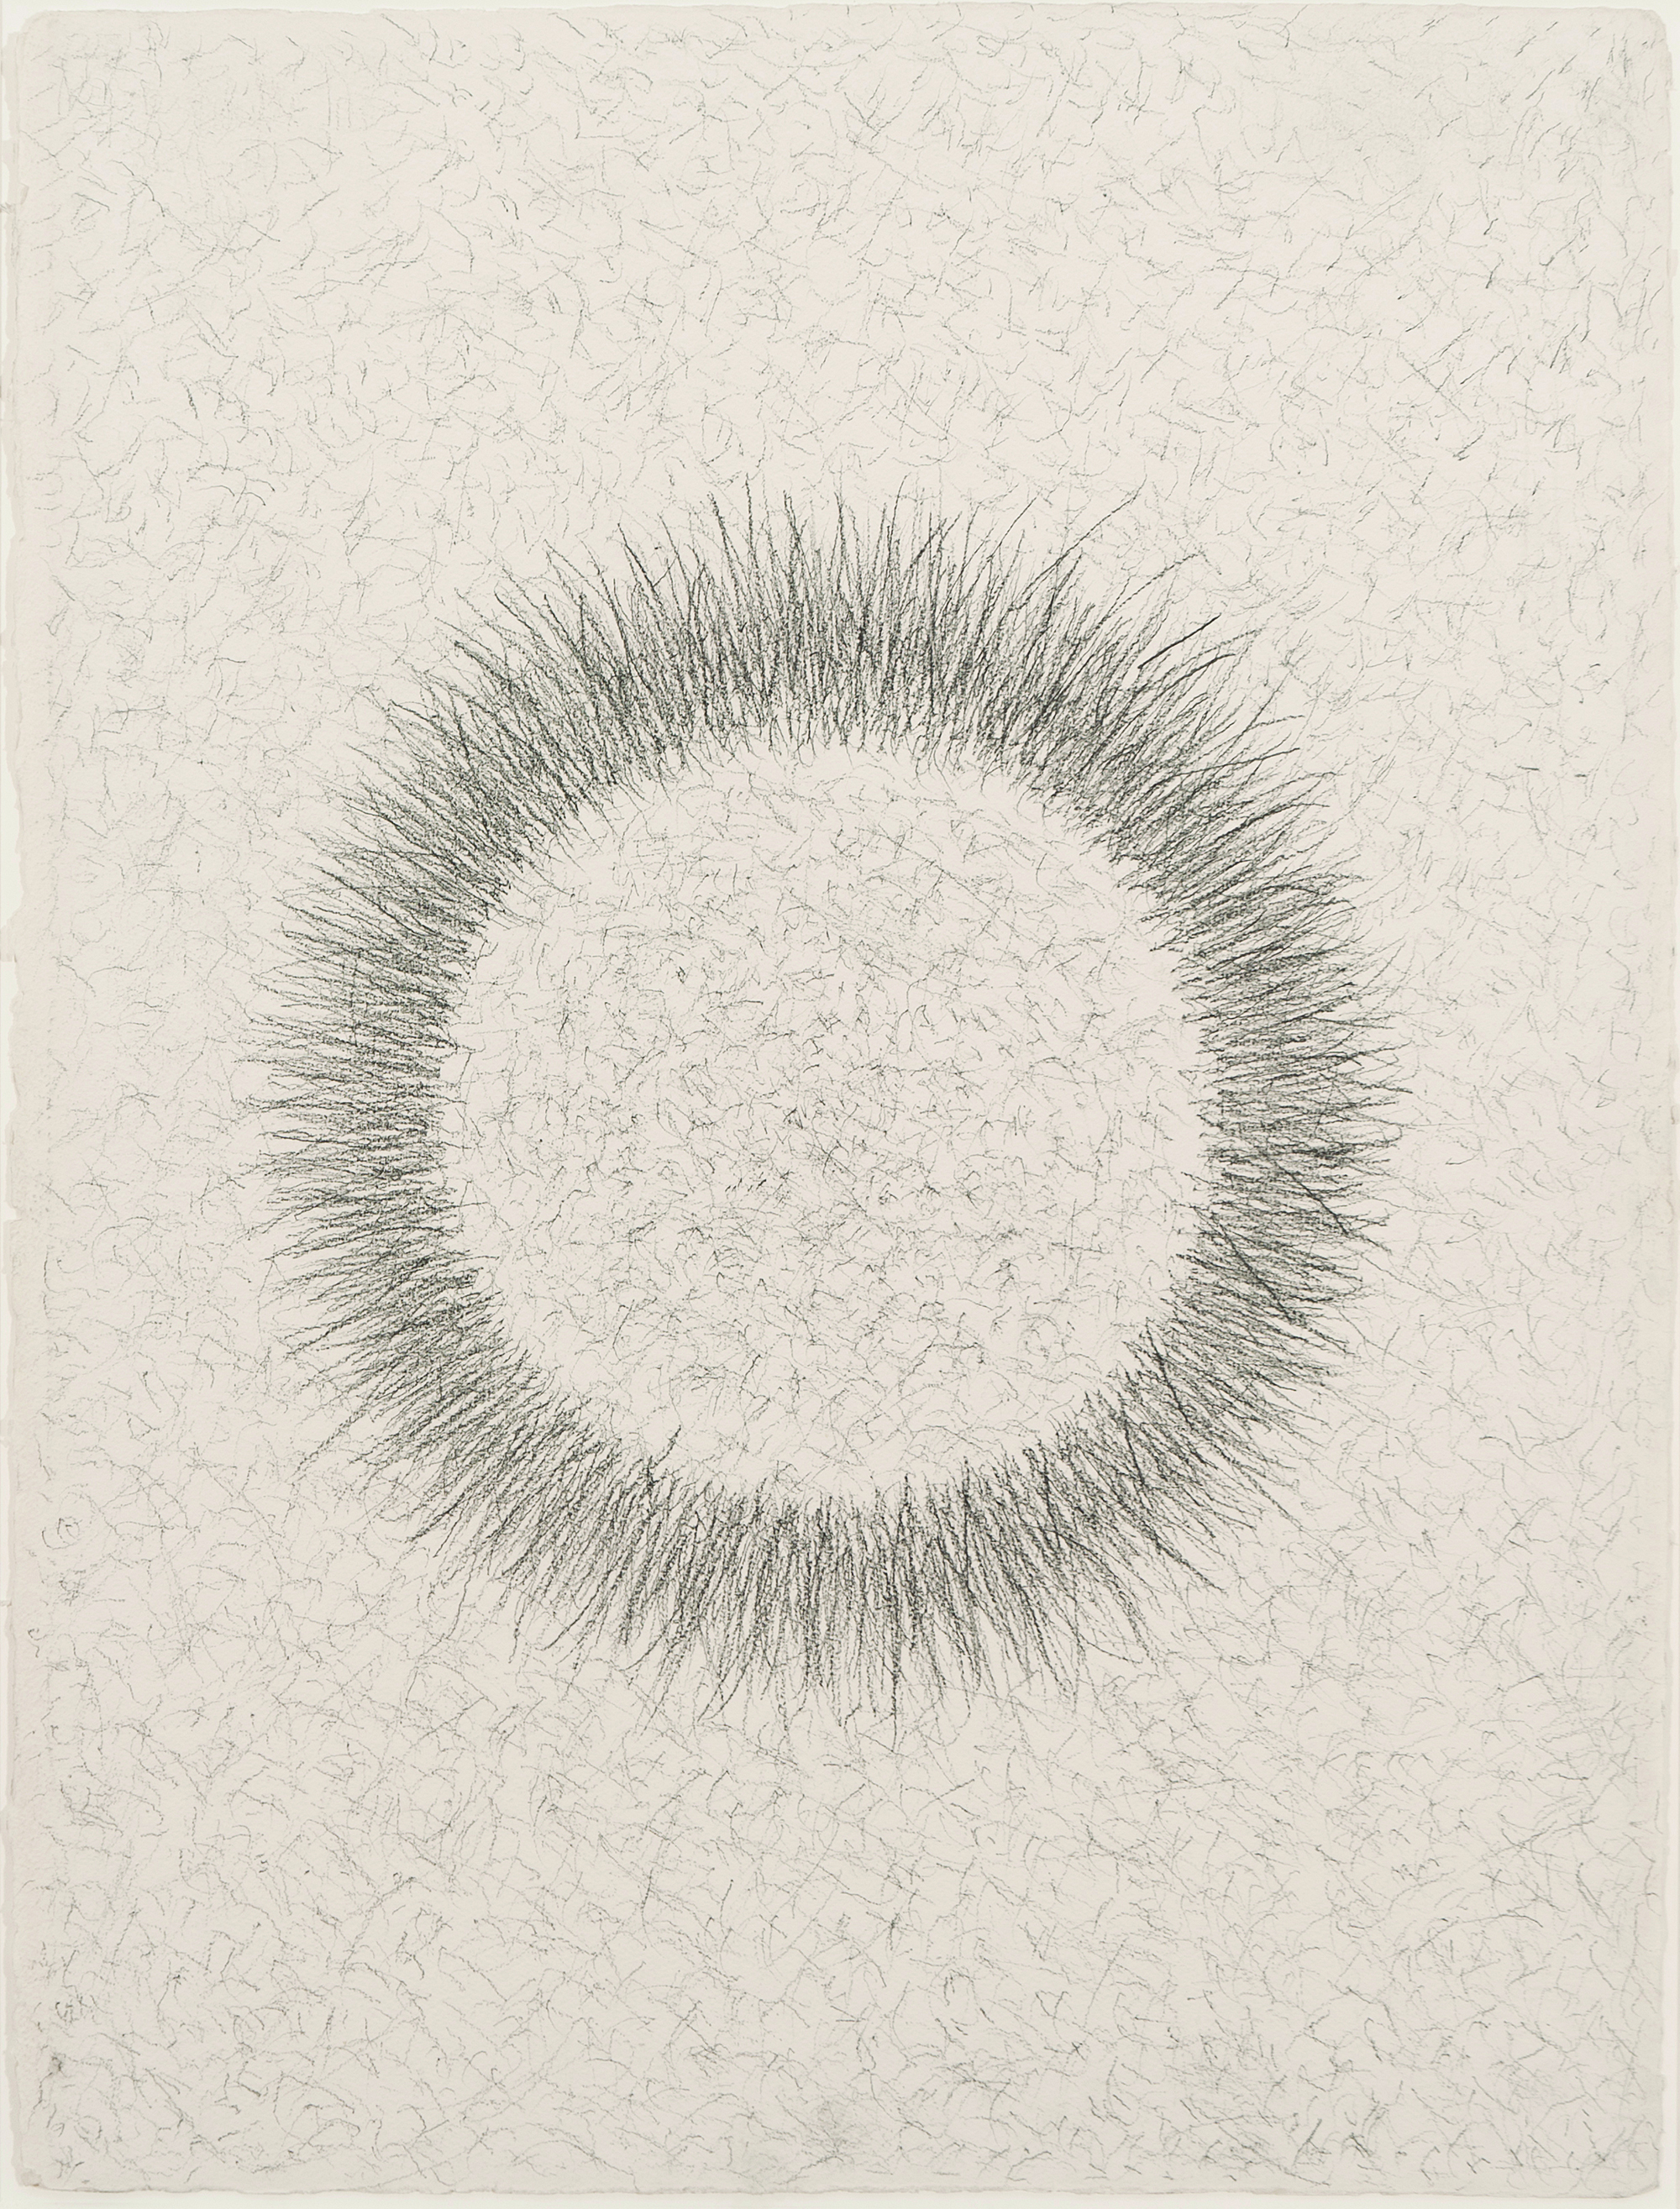 SOLD Untitled (Equinox), 1976  , graphite on Arches paper, 29 3/4 x 22 1/2 inches